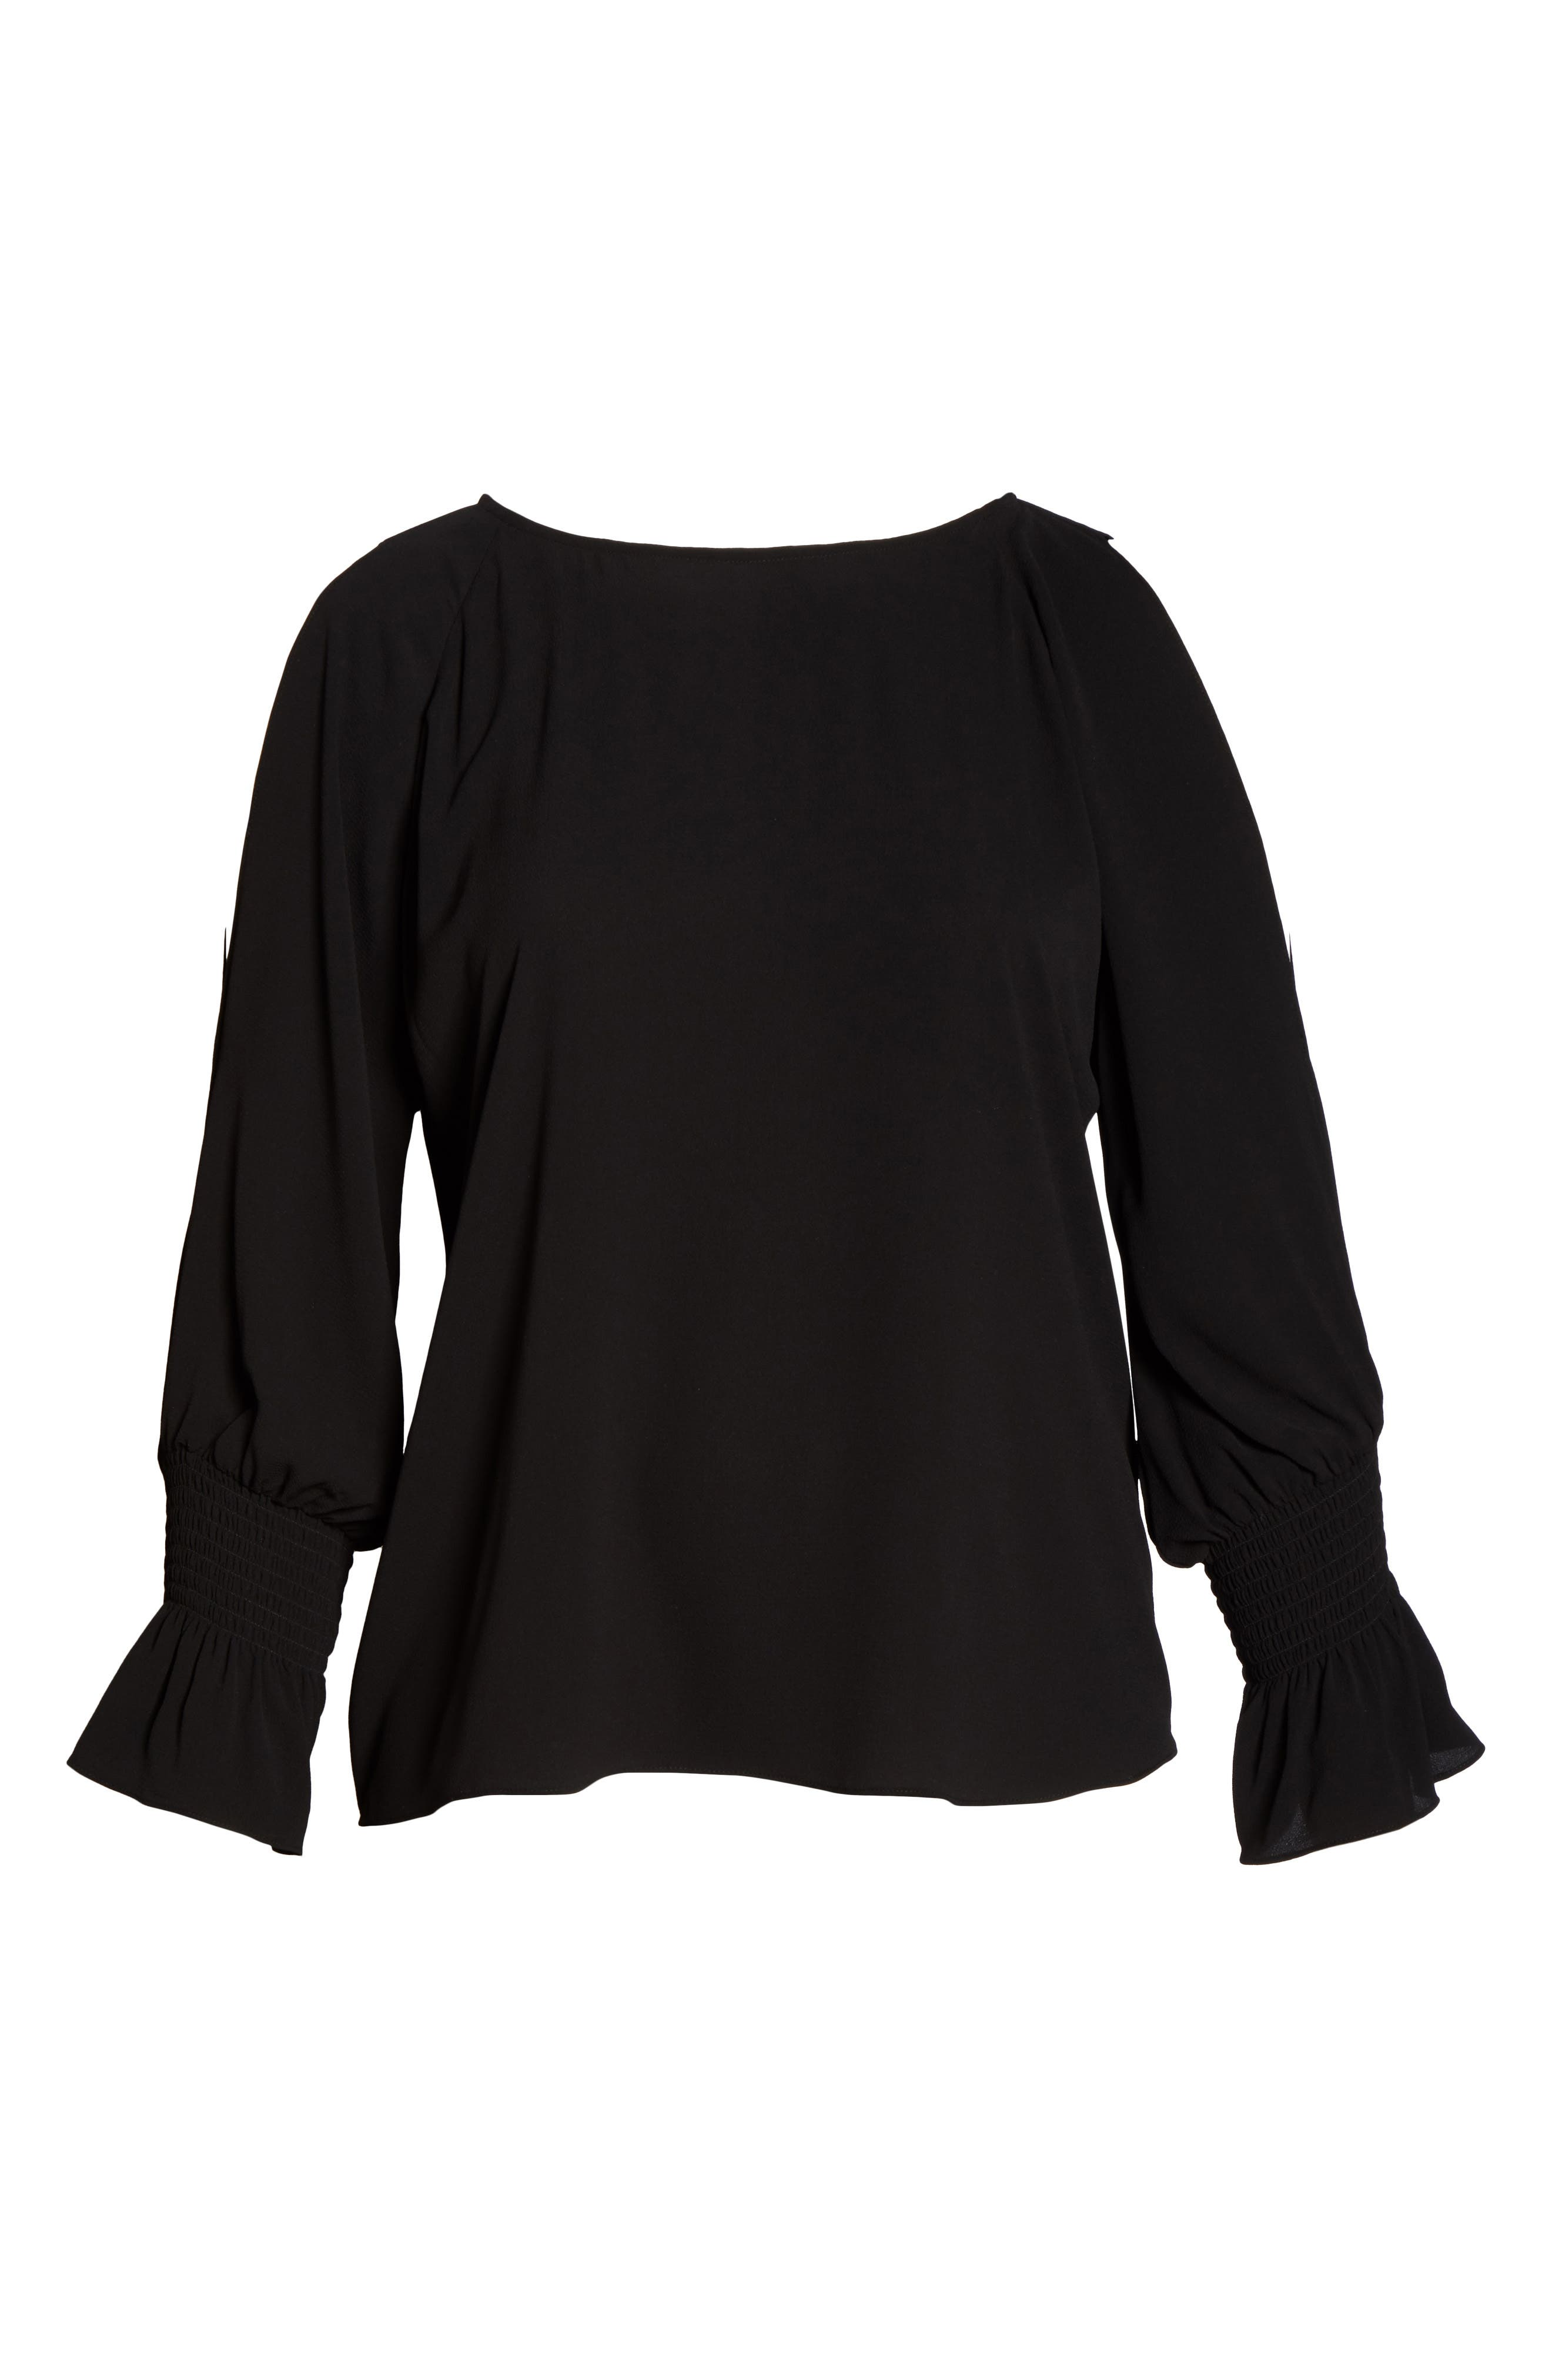 Cold Shoulder Flare Cuff Top,                             Alternate thumbnail 6, color,                             RICH BLACK